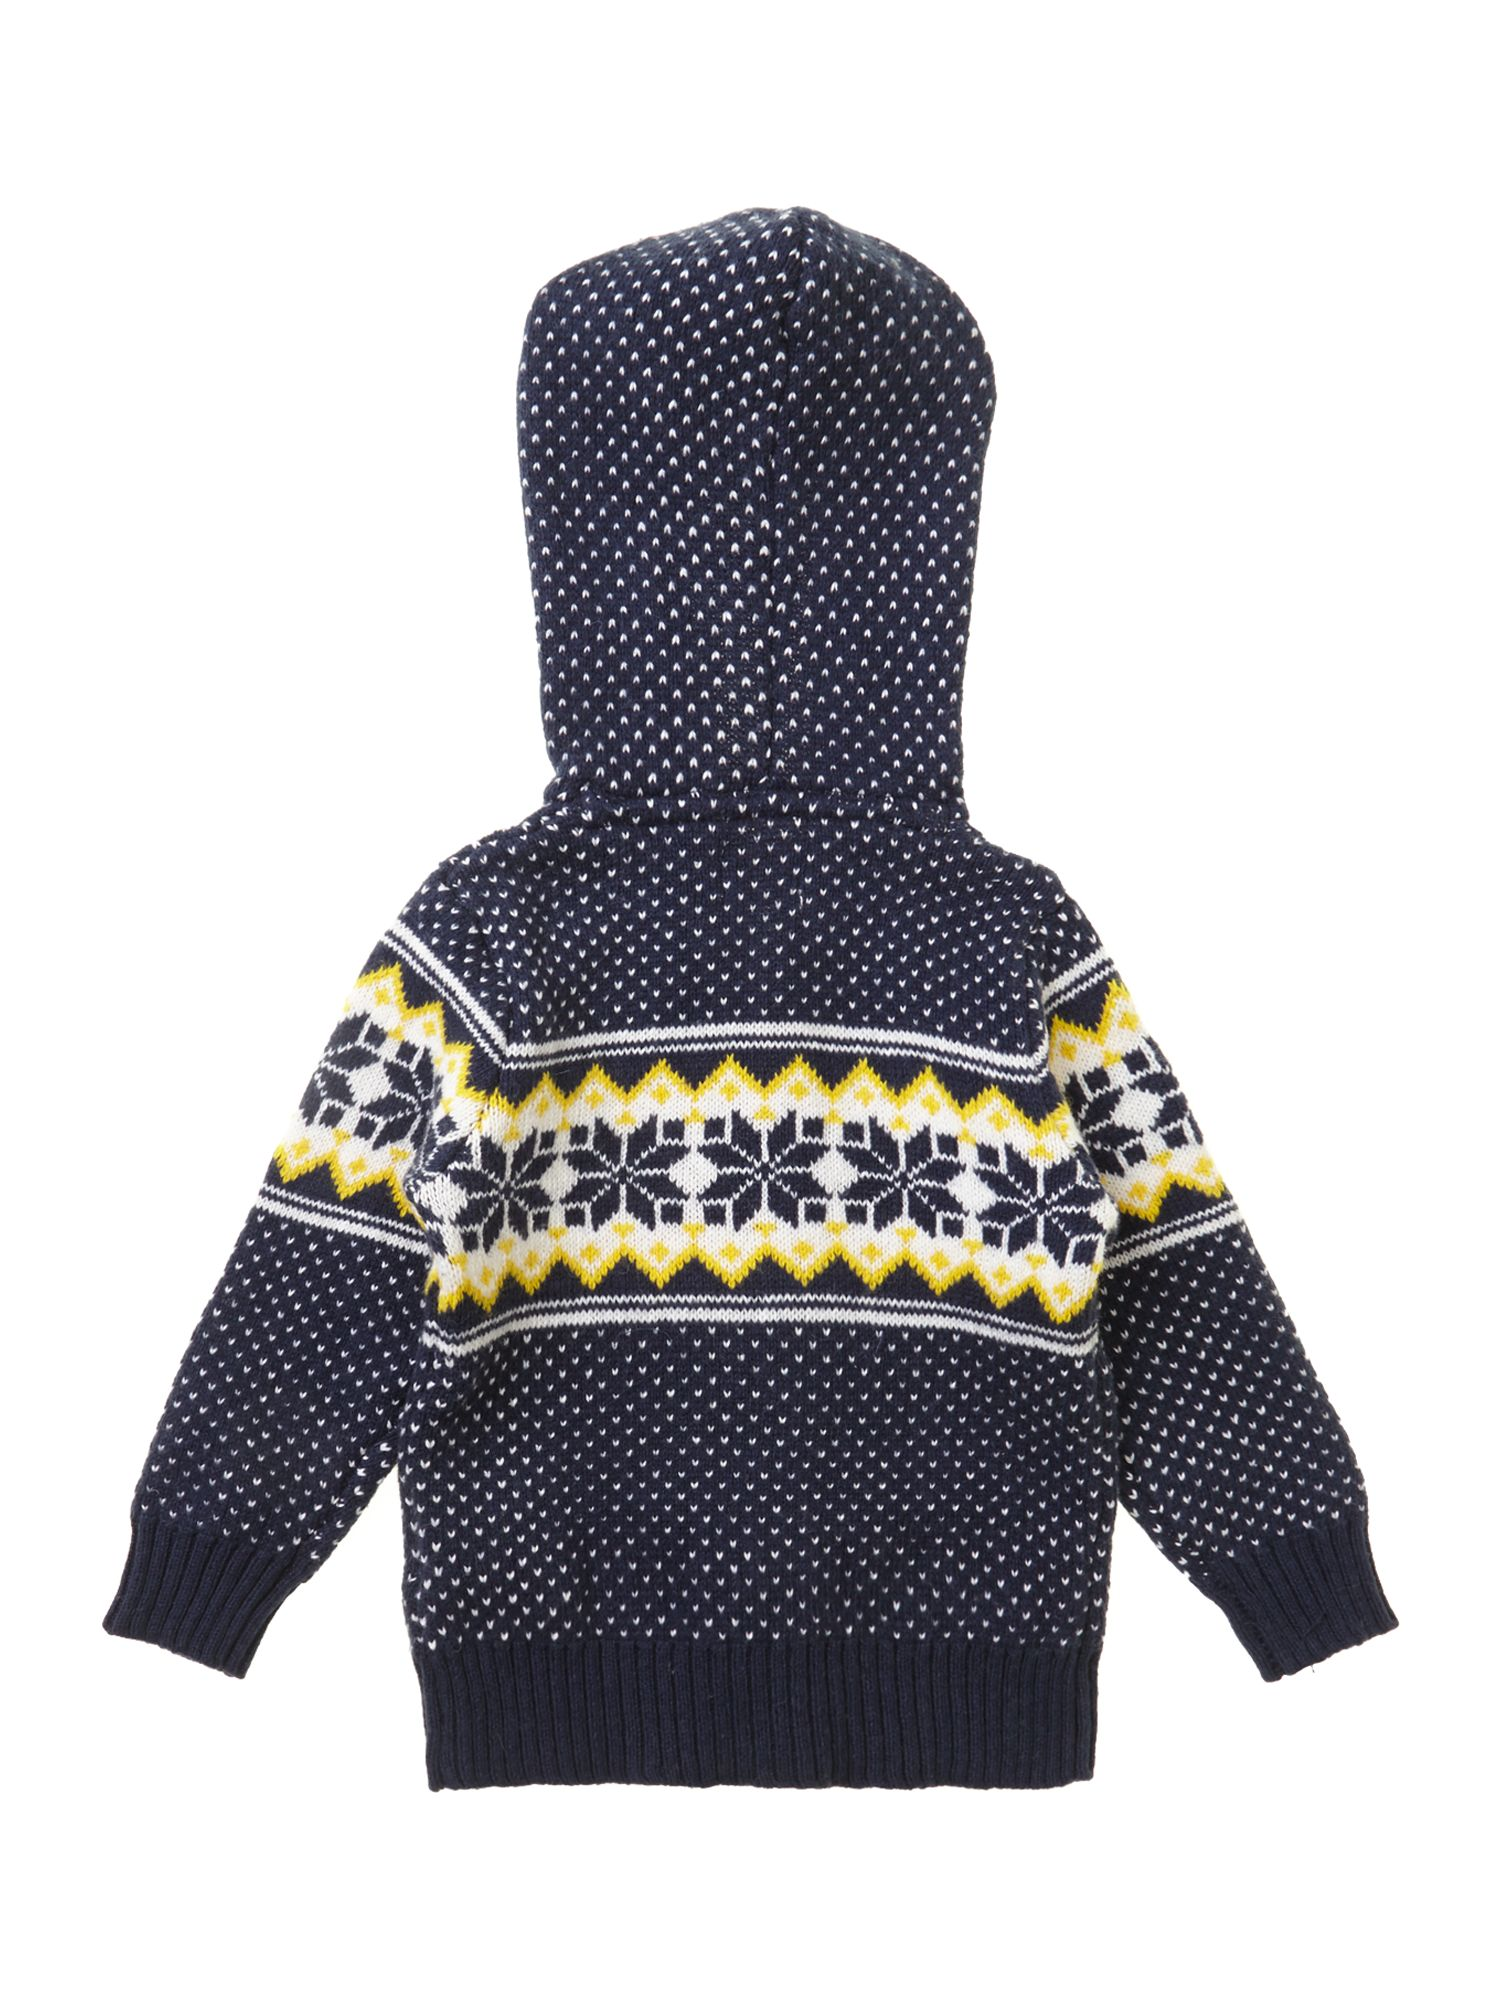 Boy`s Fair Isle knitted cardigan